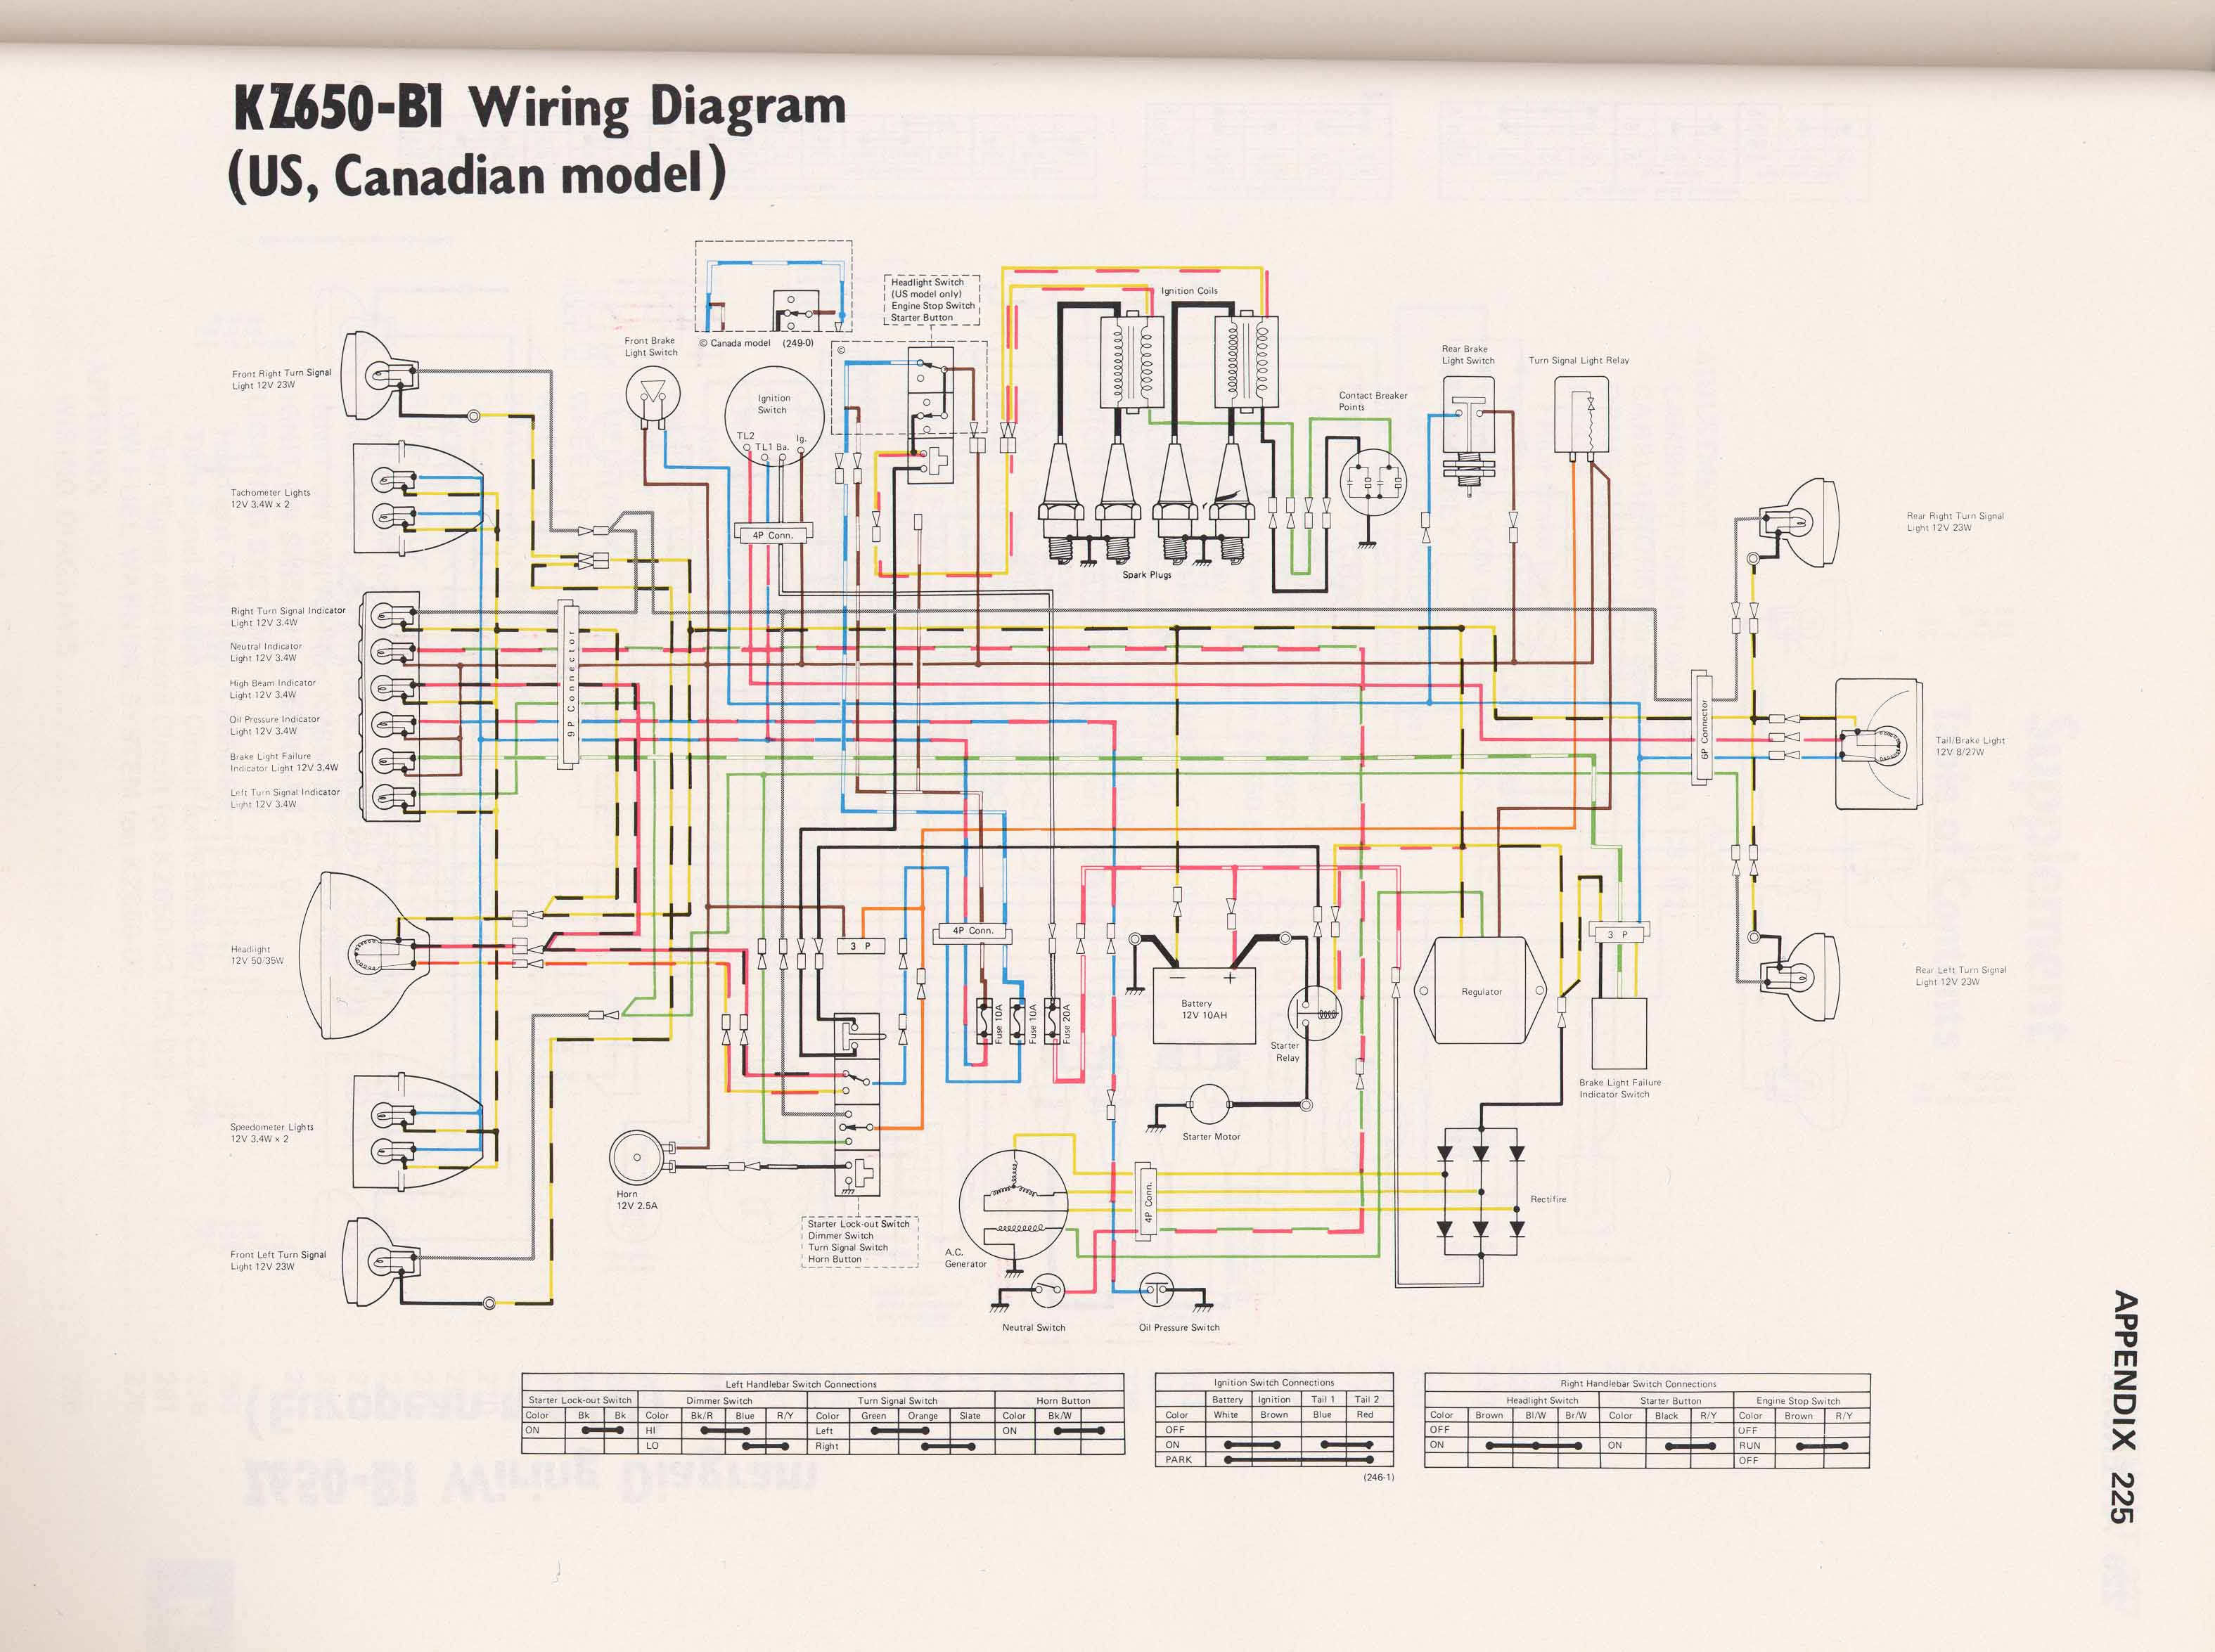 77 kz650 wiring diagram 77 kz650 wiring diagram schematic